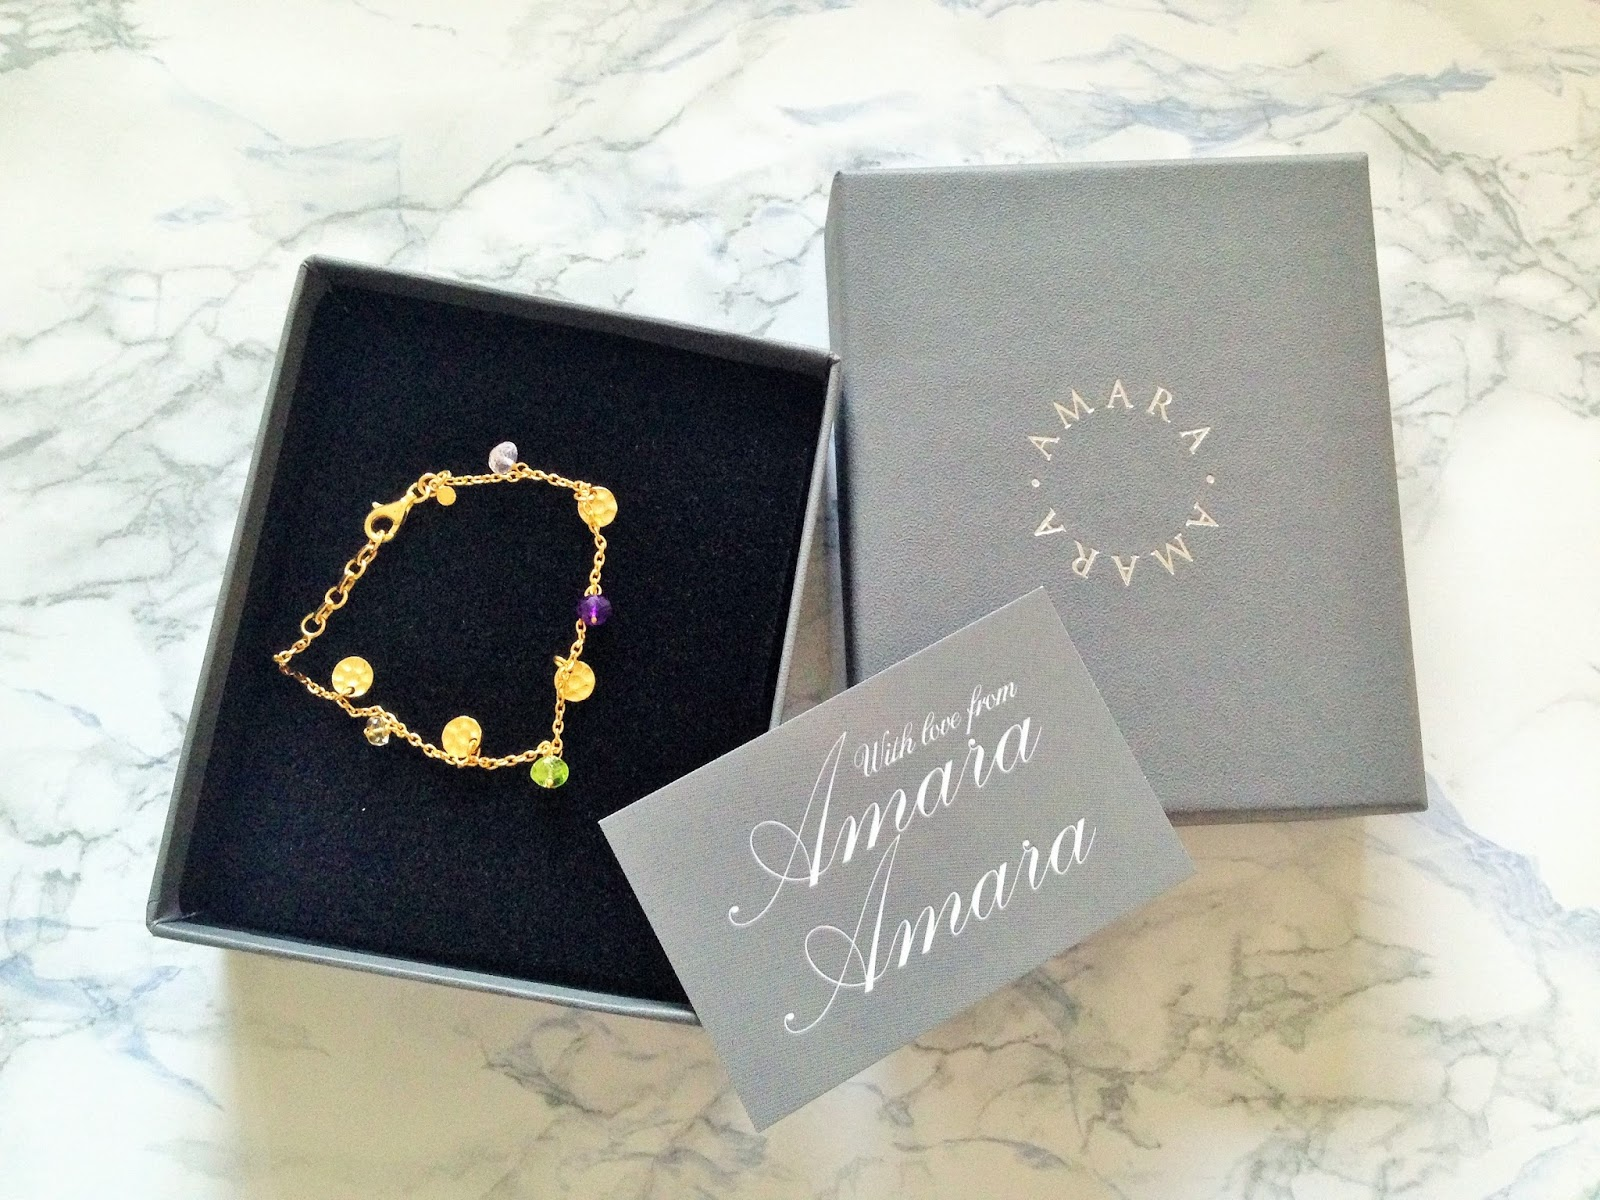 Amara Amara Gemstone Rose Quartz Bracelet Review